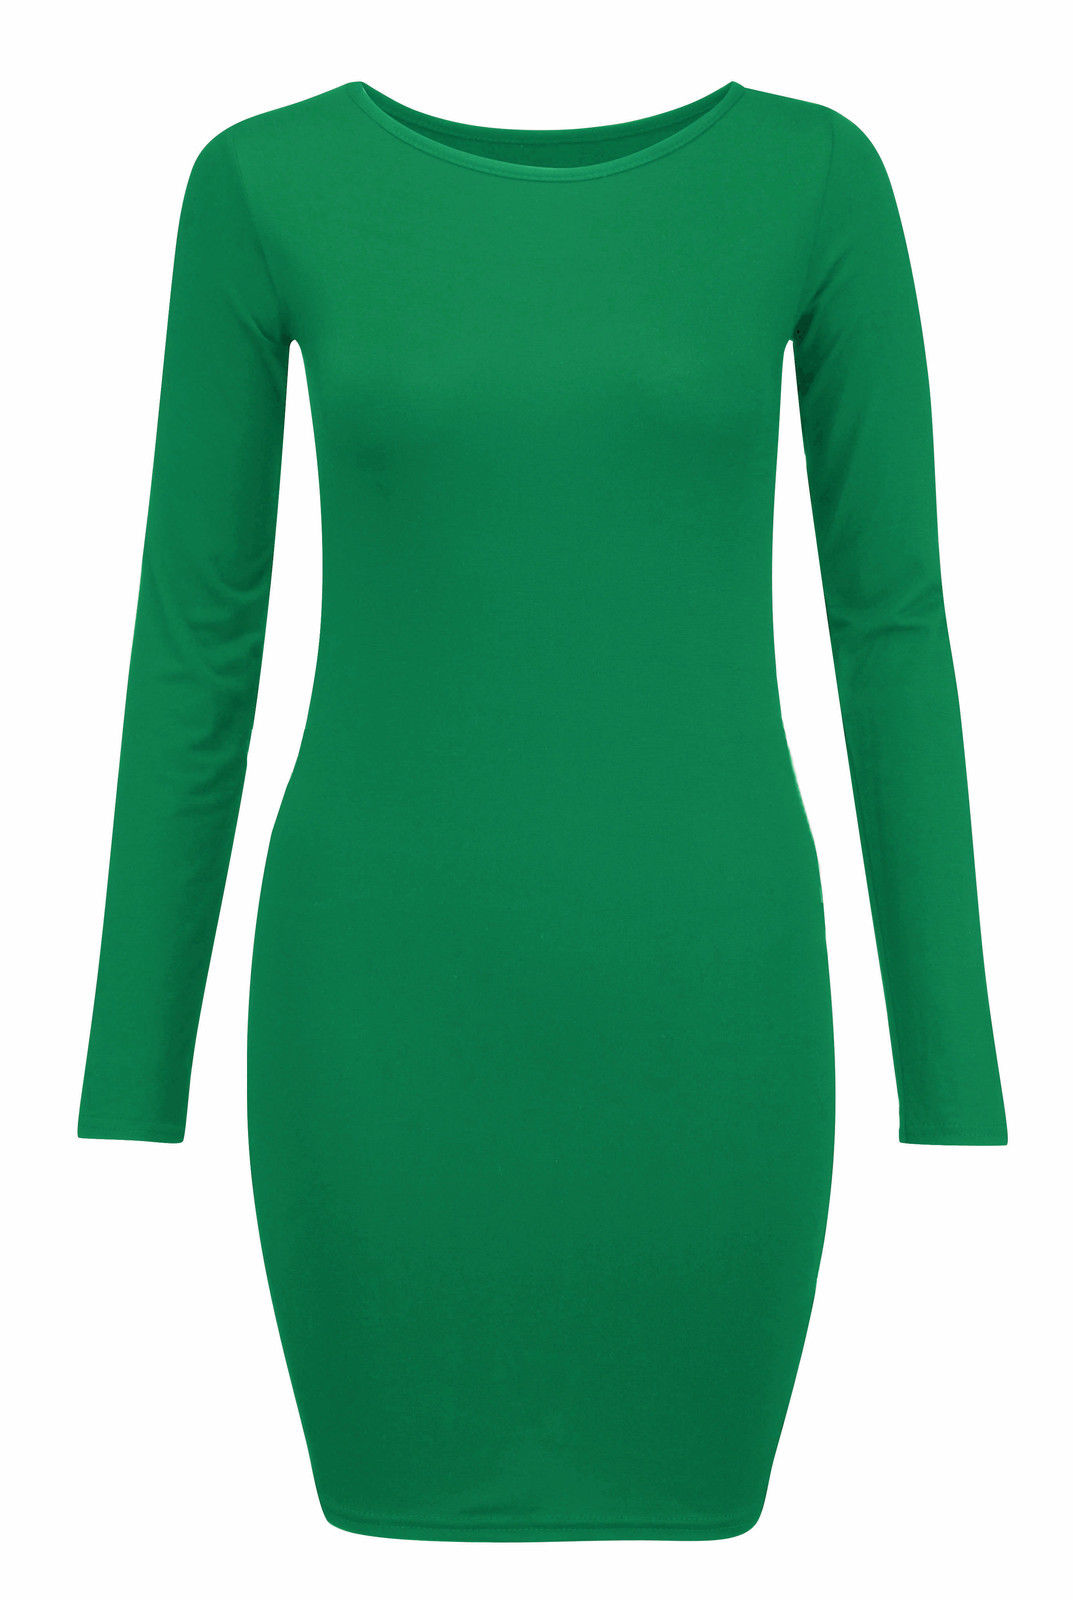 New-Womens-Long-Sleeve-Bodycon-Dress-Ladies-Jersey-T-Shirt-Top-Plus-Size-UK-8-22